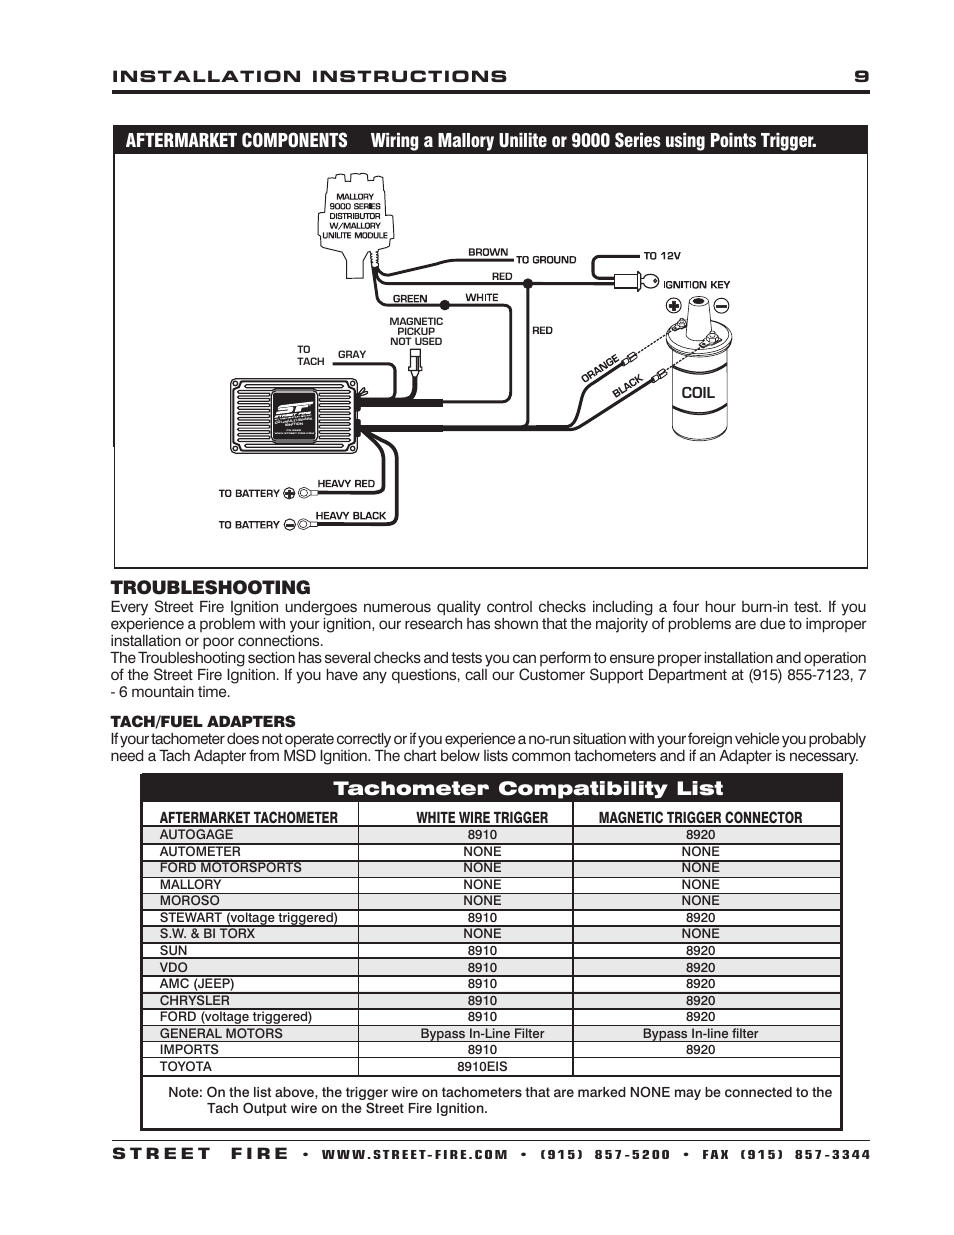 Mallory Hyfire 6al Wiring Diagram 33 Images 29440 High Fire Ignition Diagrams Dist Msd 5520 Street Control Installation Page9resize6652c861